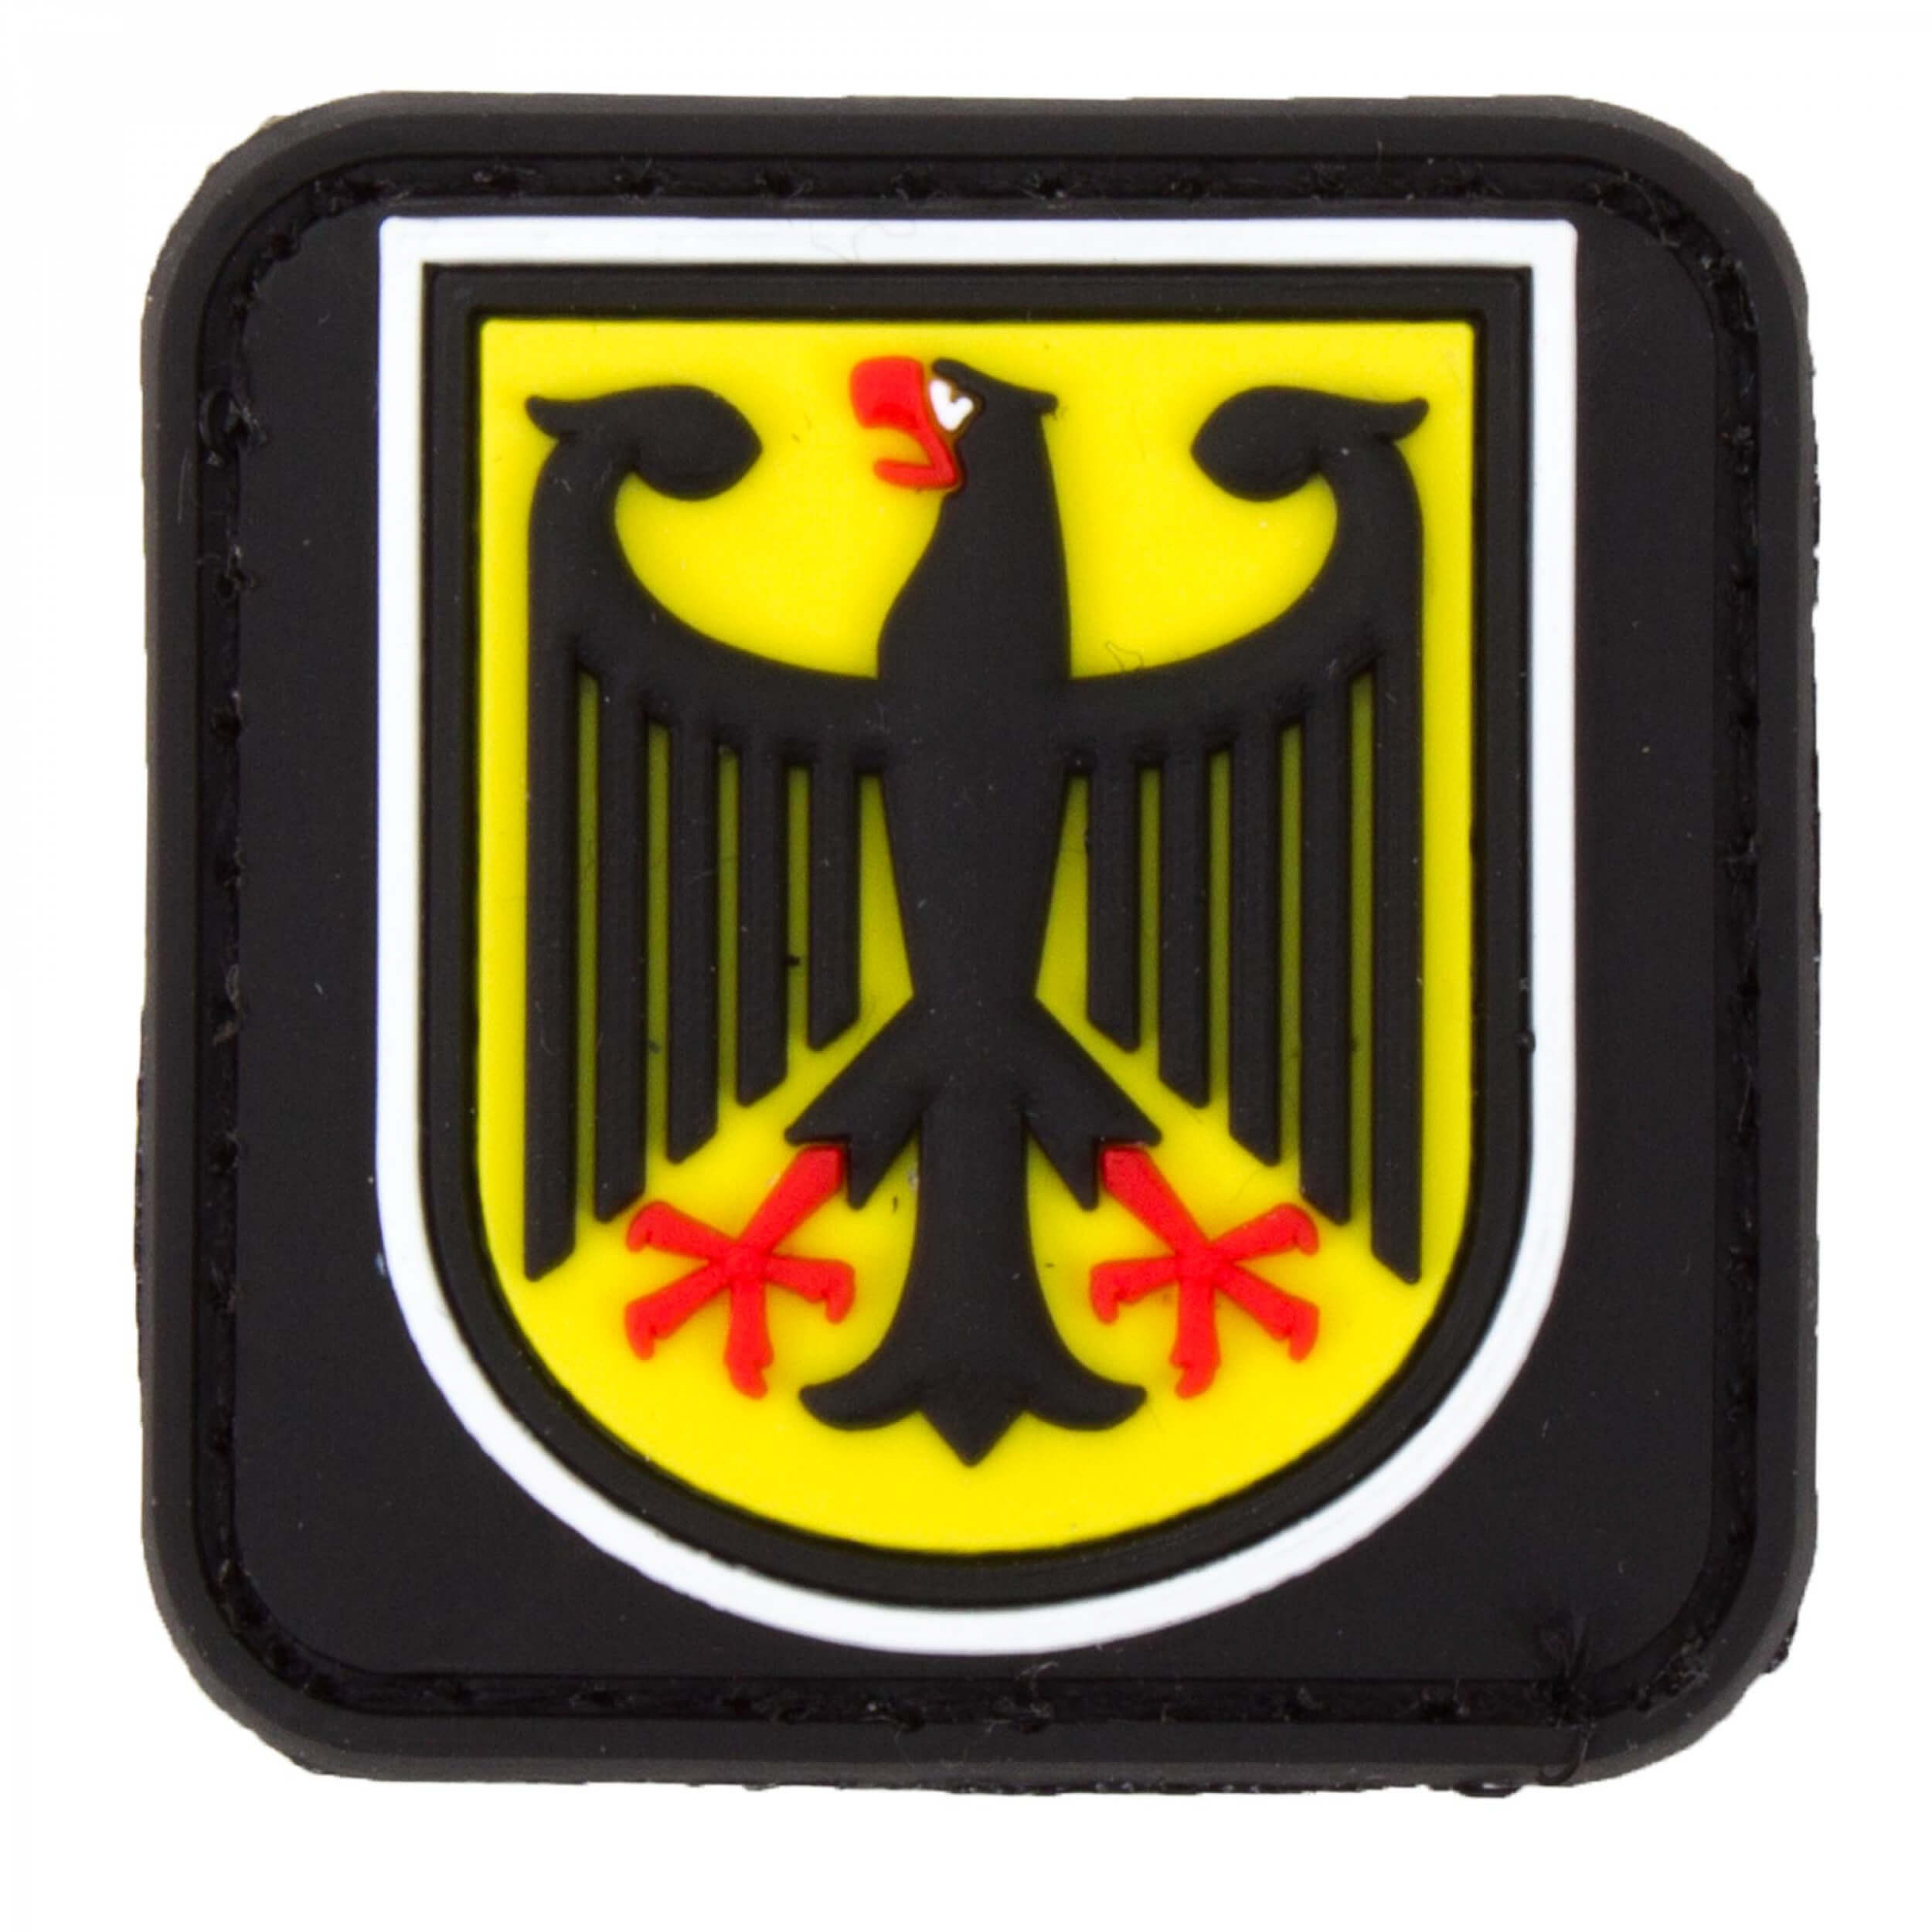 JTG kleiner Bundespolizei Patch, fullcolor / JTG 3D Rubber Patch